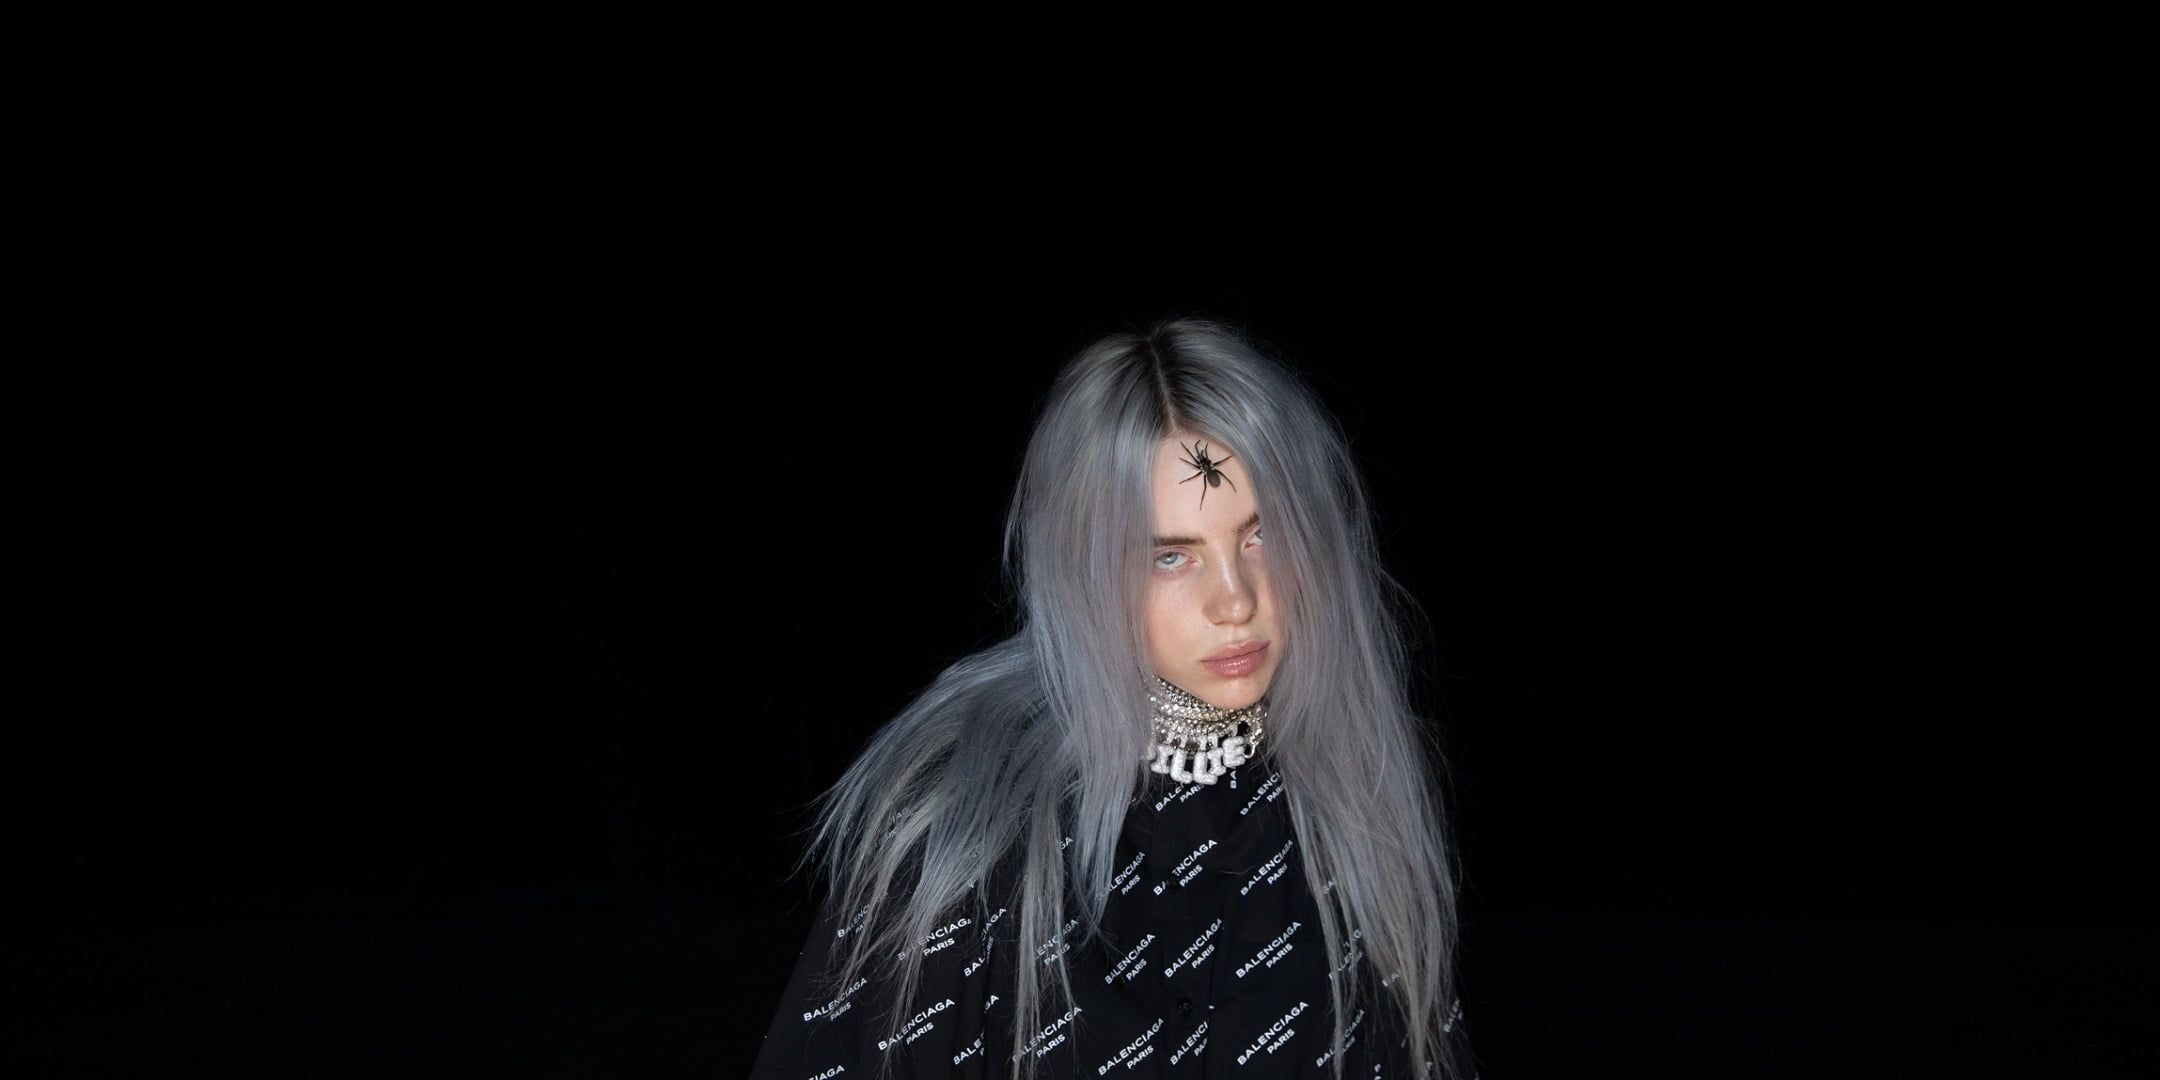 Singers Billie Eilish 1080p Wallpaper Hdwallpaper Desktop In 2020 Billie Eilish Billie Laptop Wallpaper